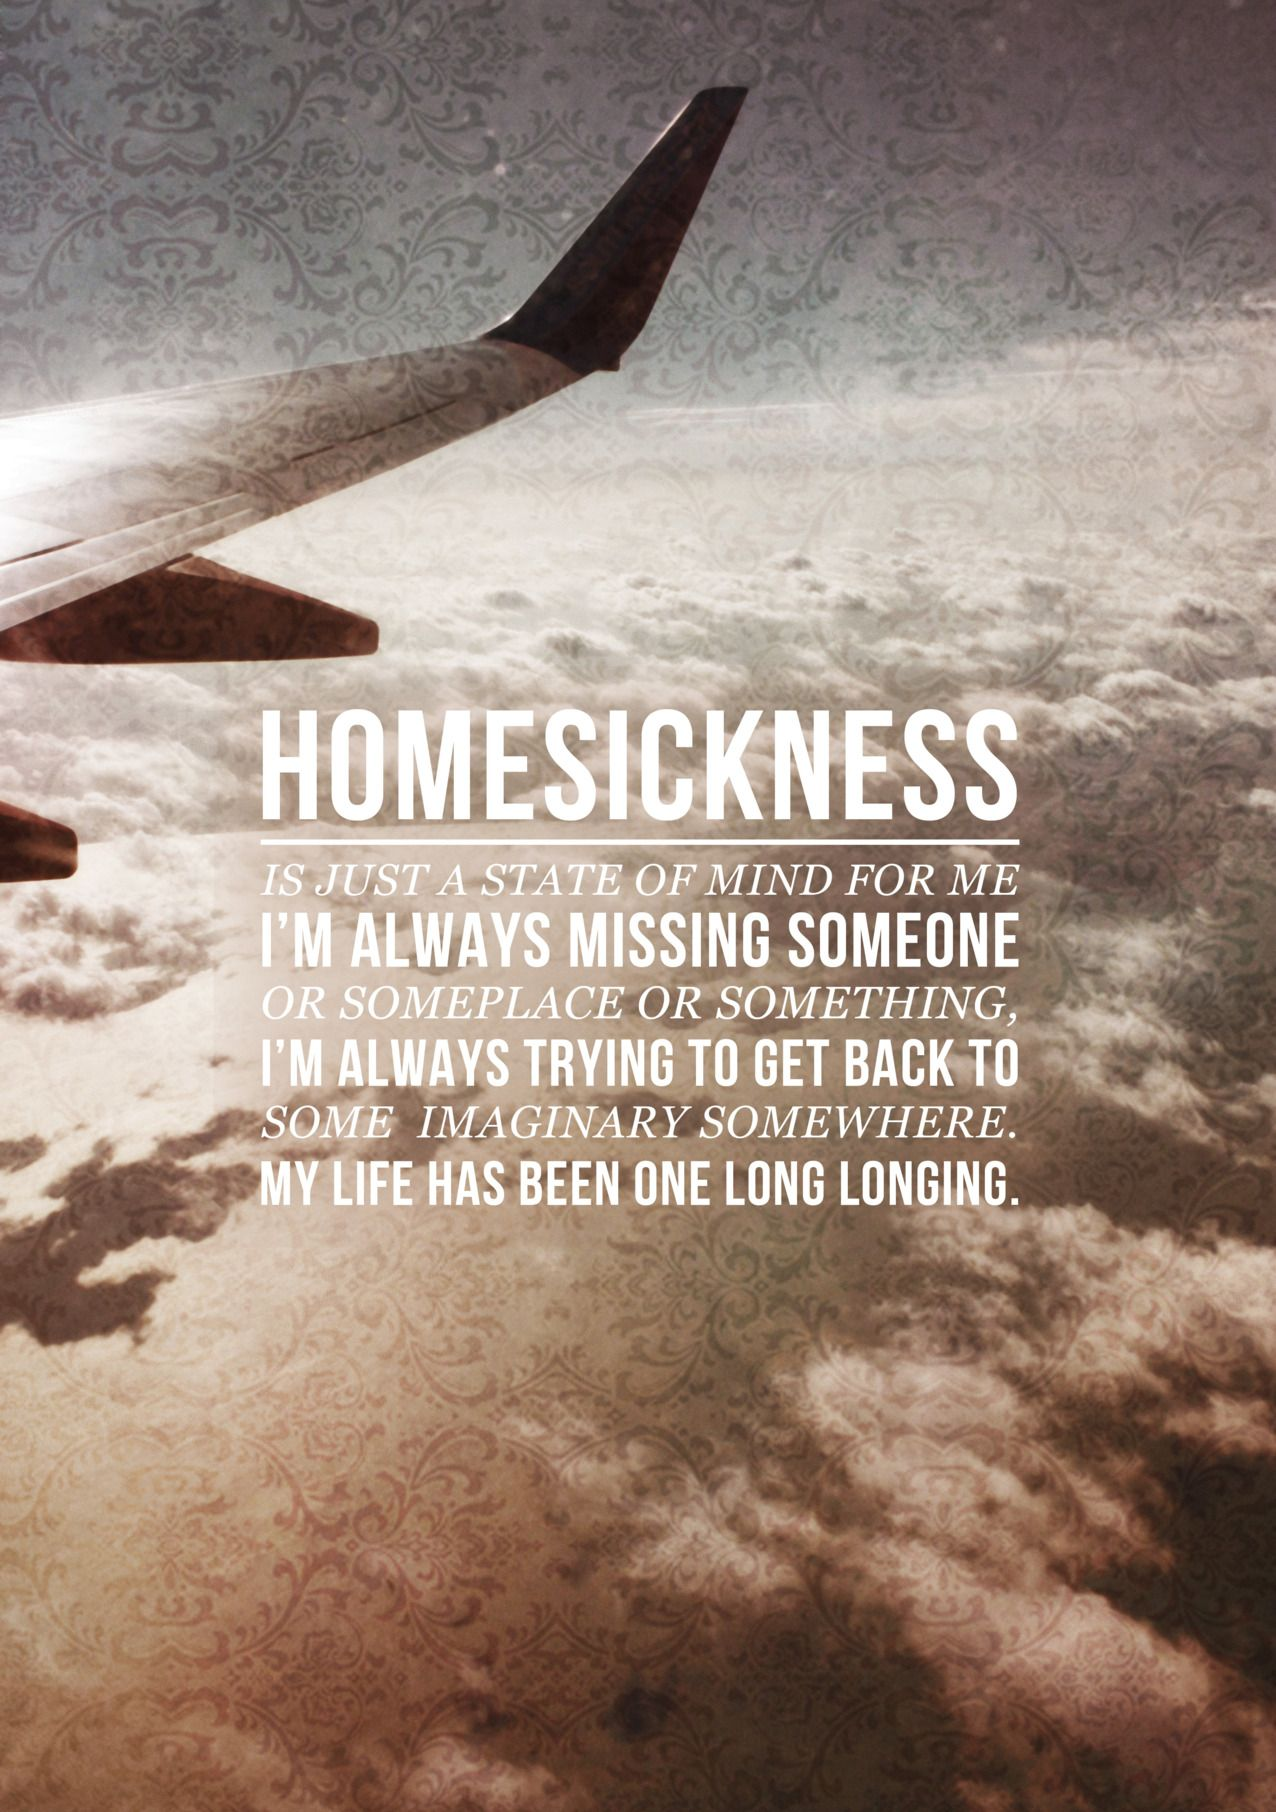 Homesickness Is Just A Quotes Good Advice Homesick Quotes